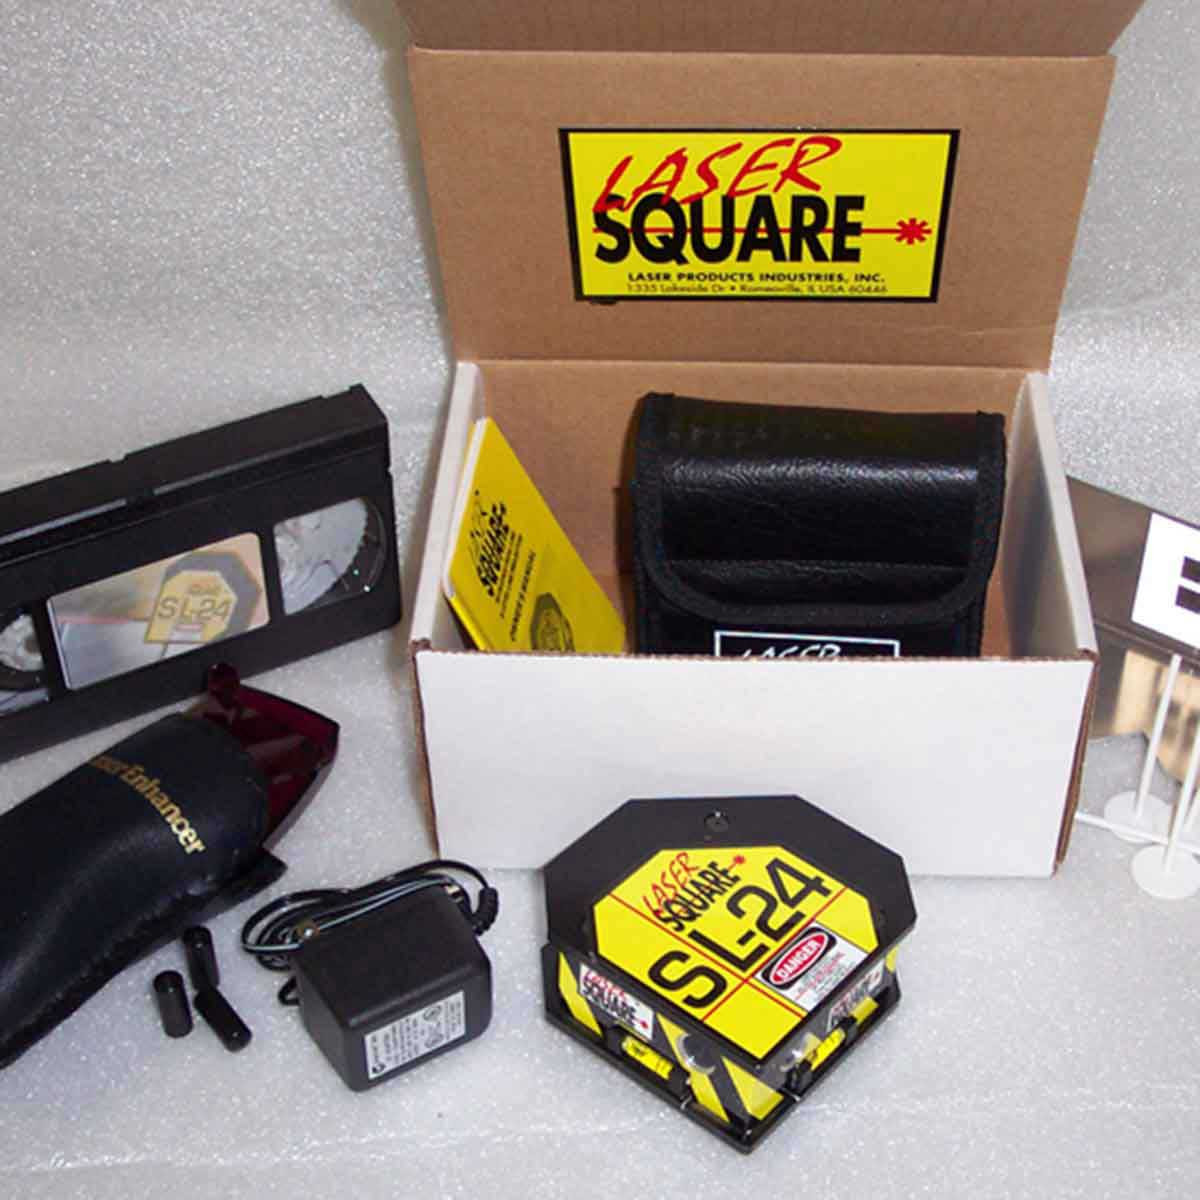 Laser Square SL24 kit